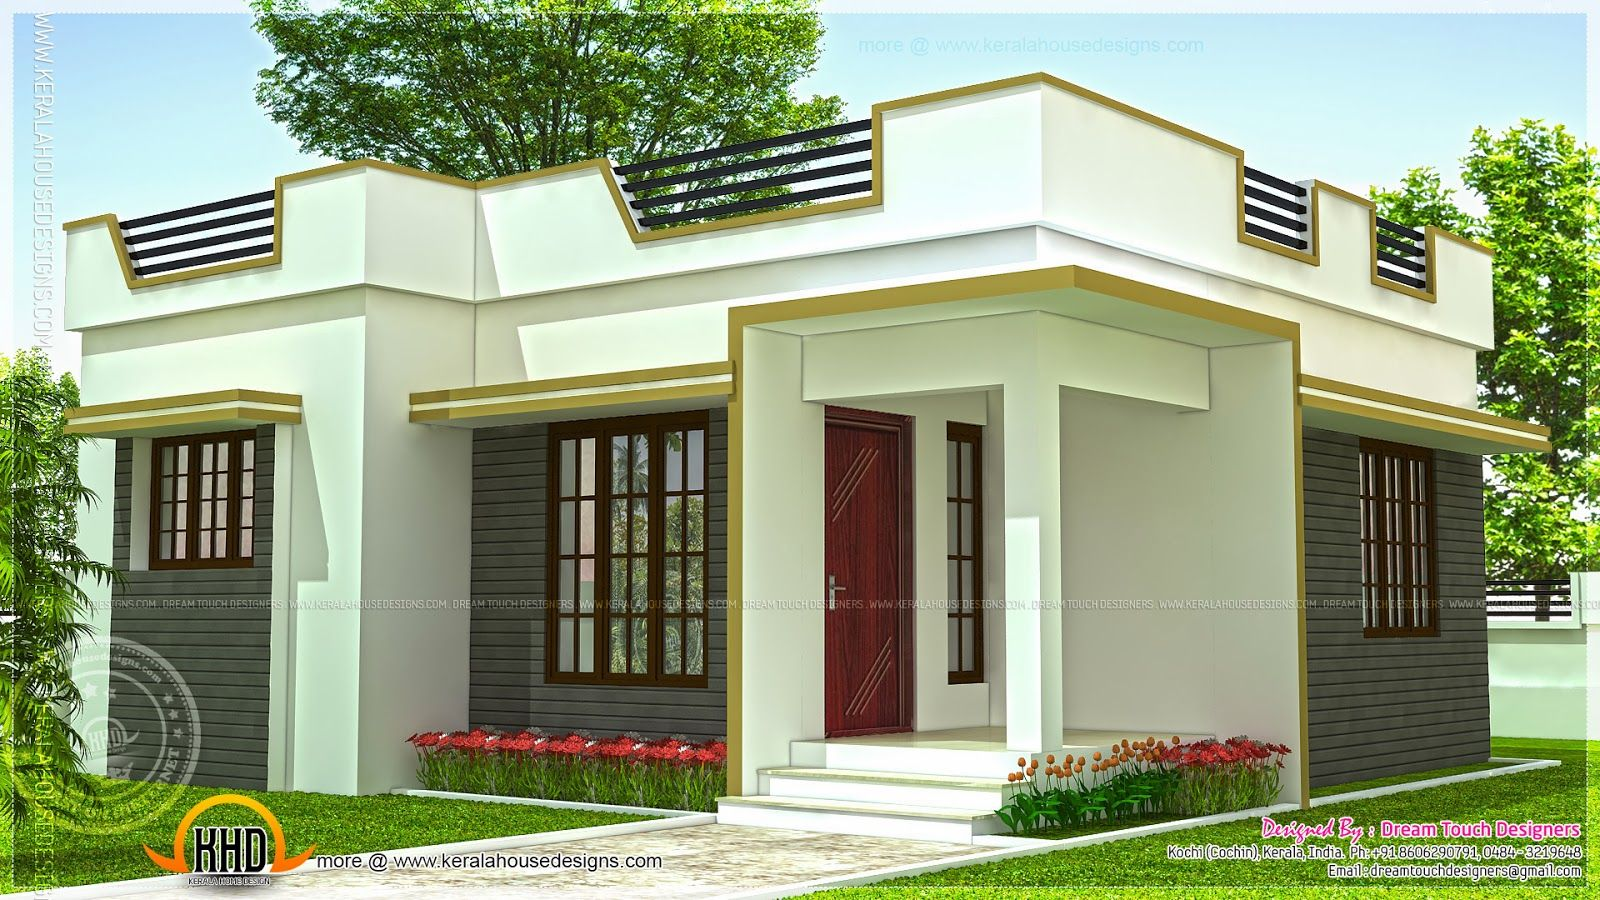 Lately 21 small house design kerala small house Small house pictures and plans